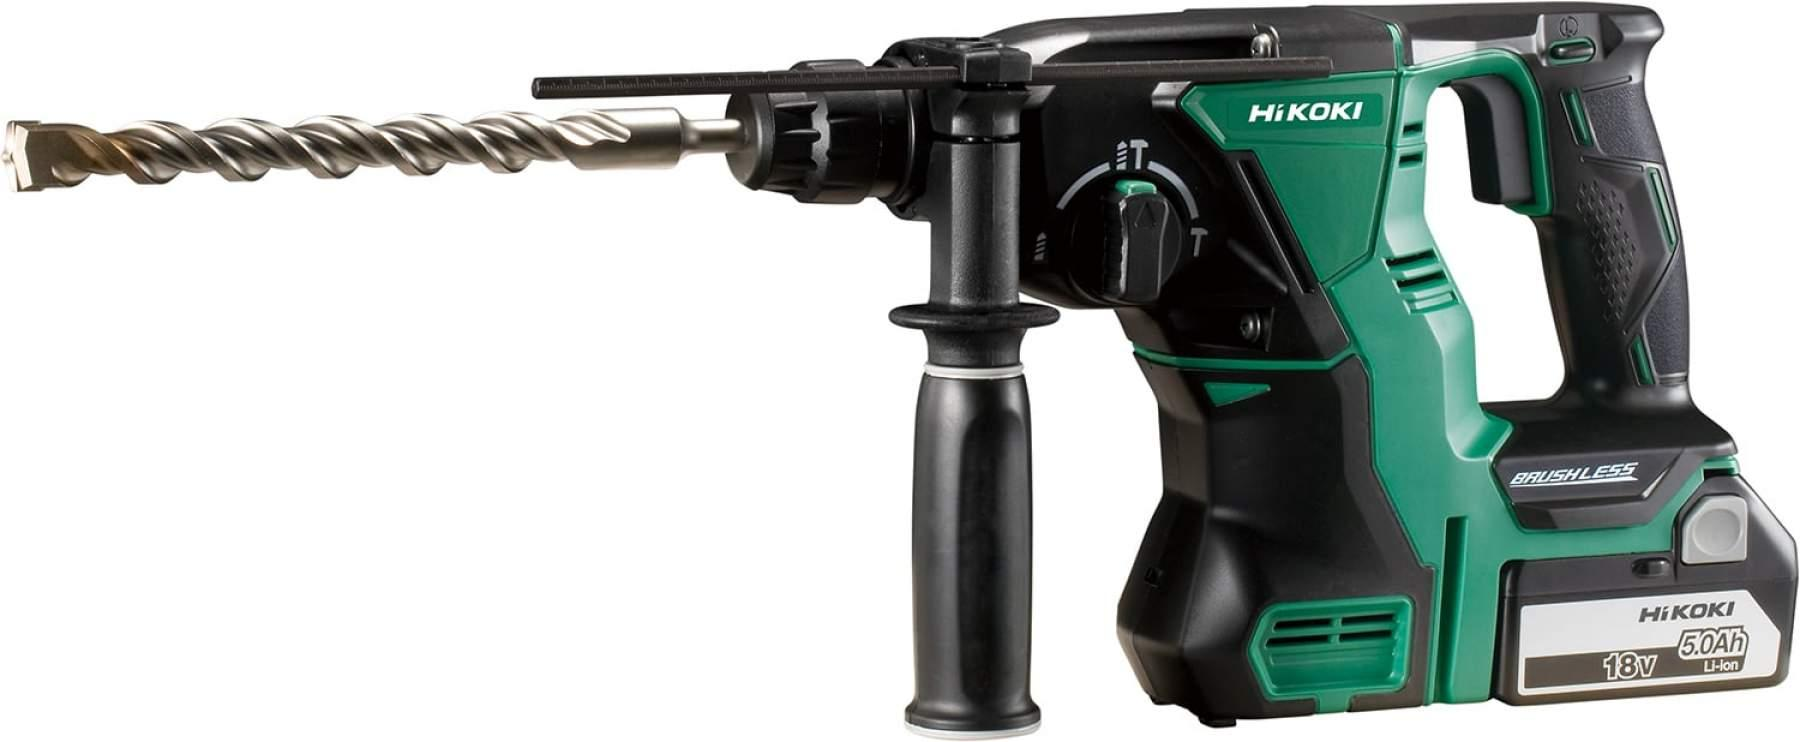 HiKOKI DH18DBL 18V Brushless SDS Plus Rotary Hammer Drill With 2 X 5.0Ah Batteries